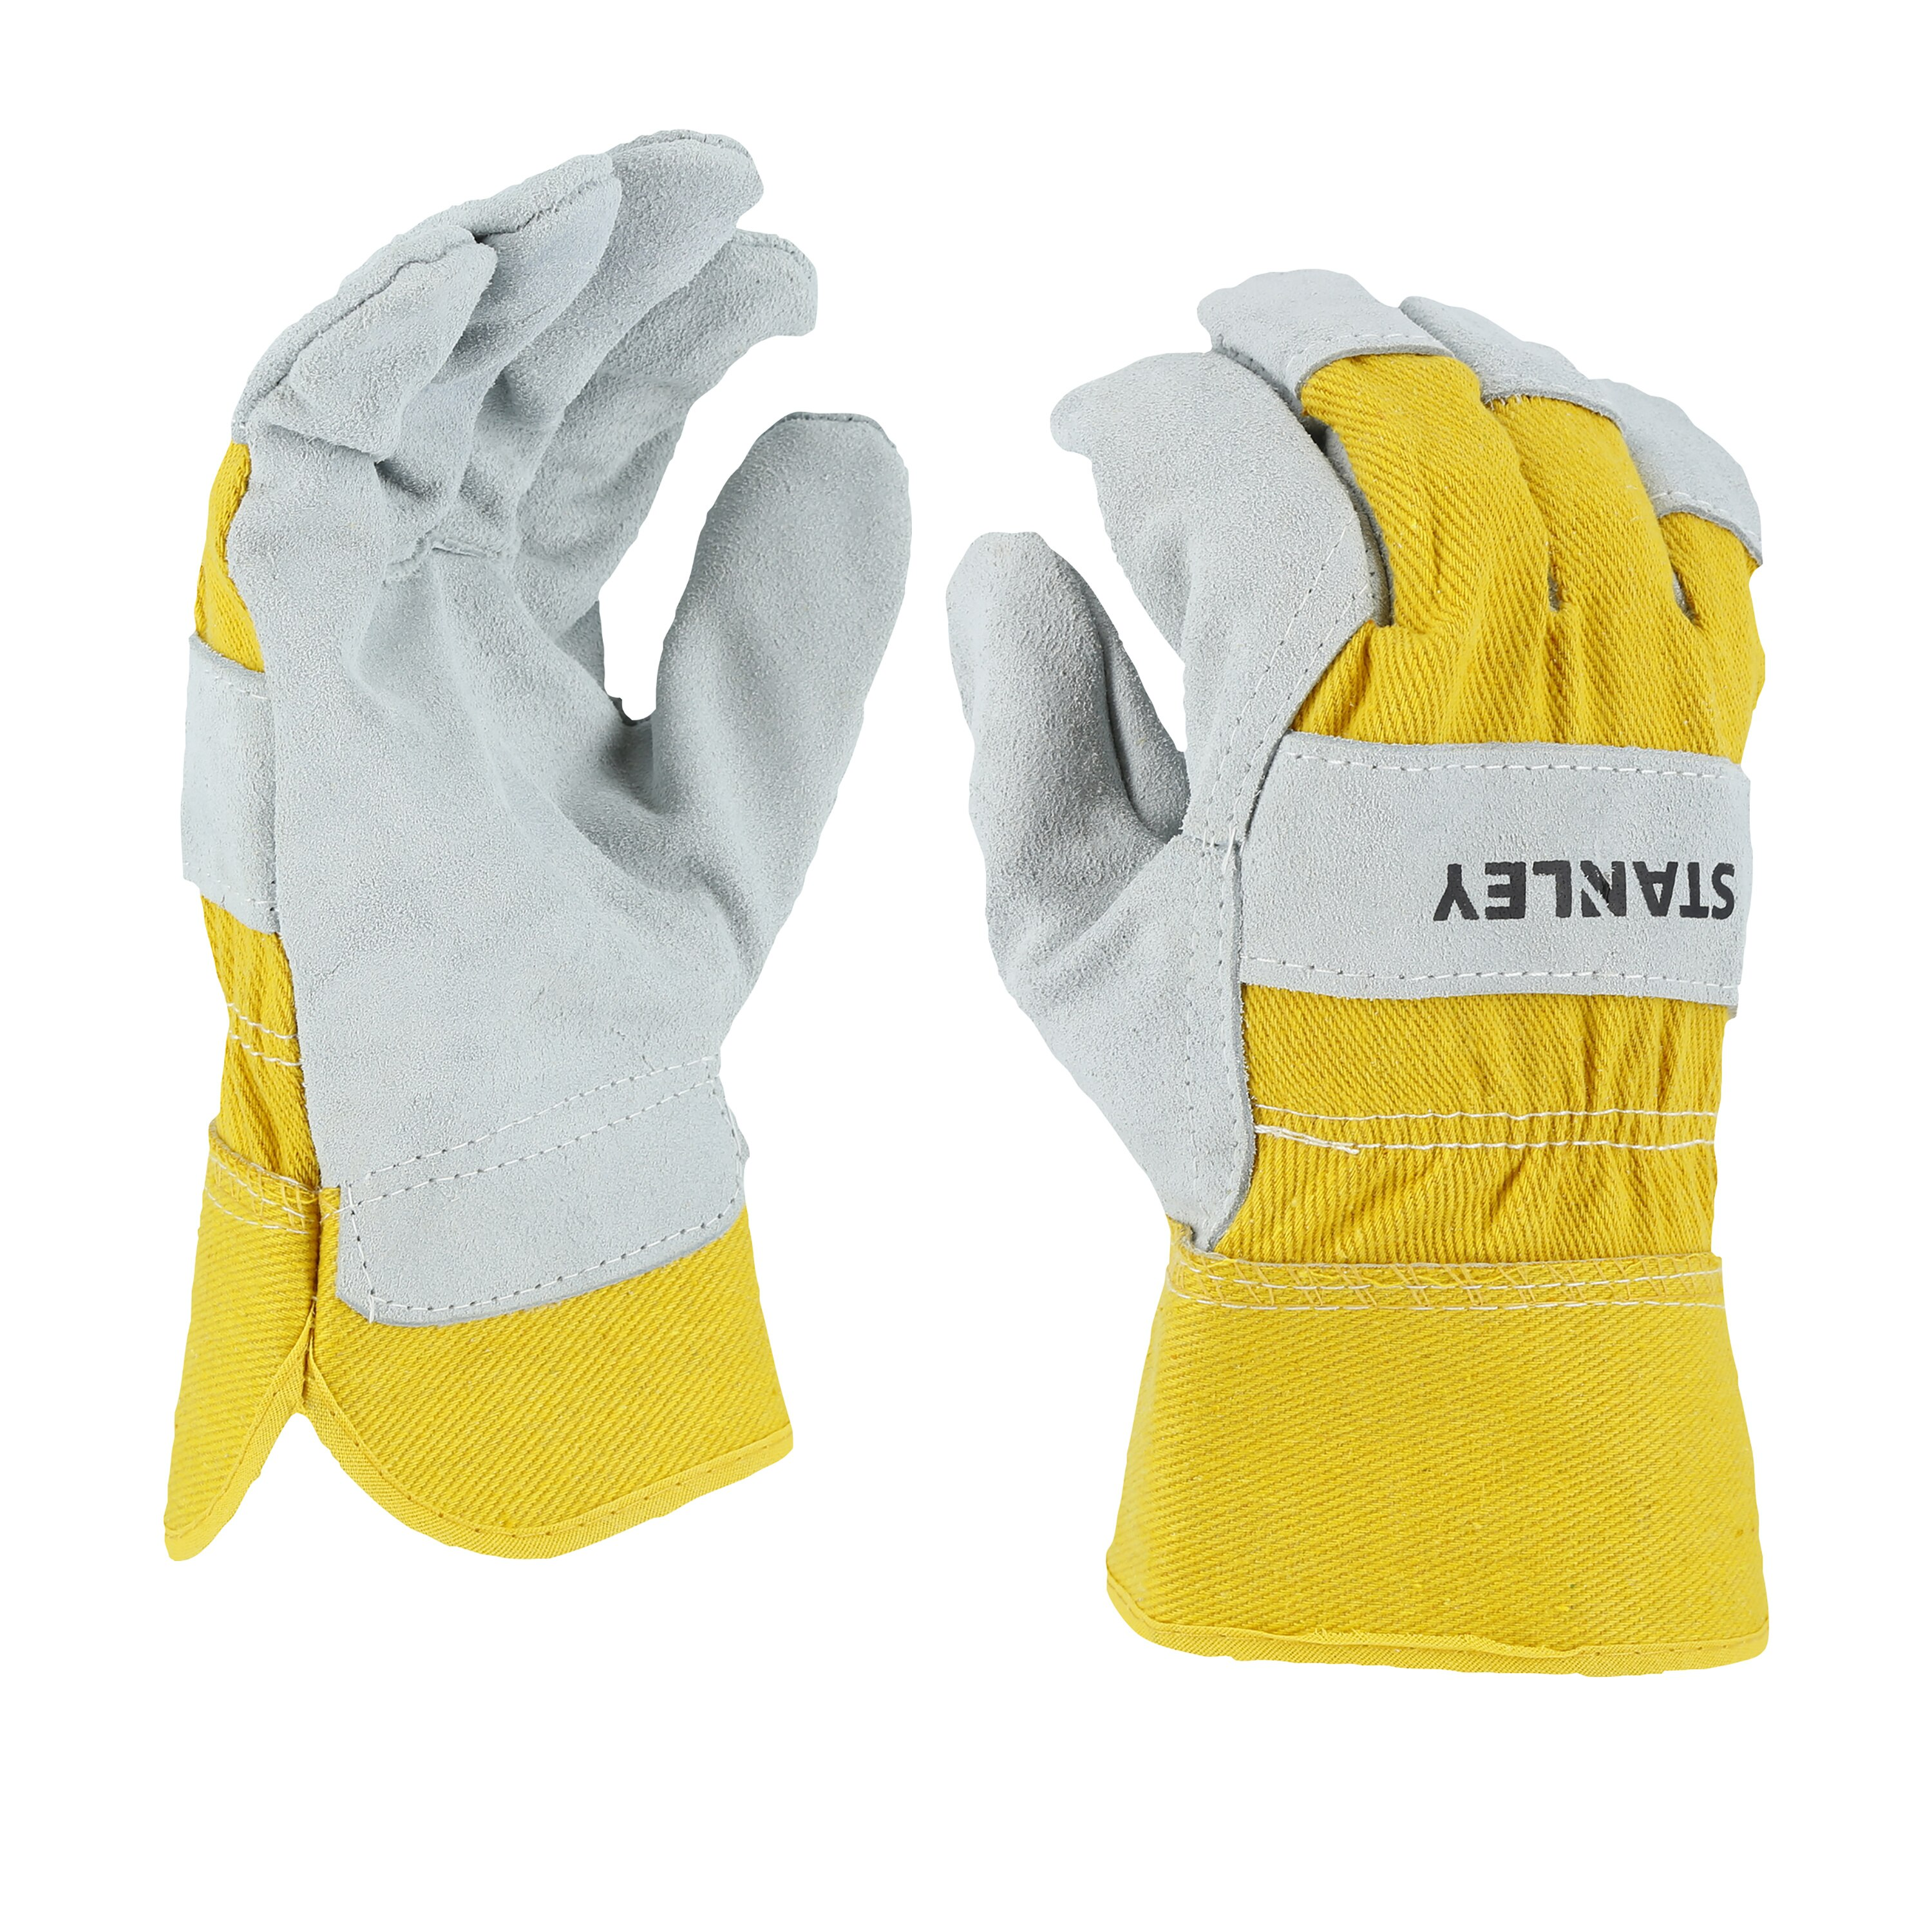 Stanley Tools - Cowhide Leather Palm Gloves - S73111